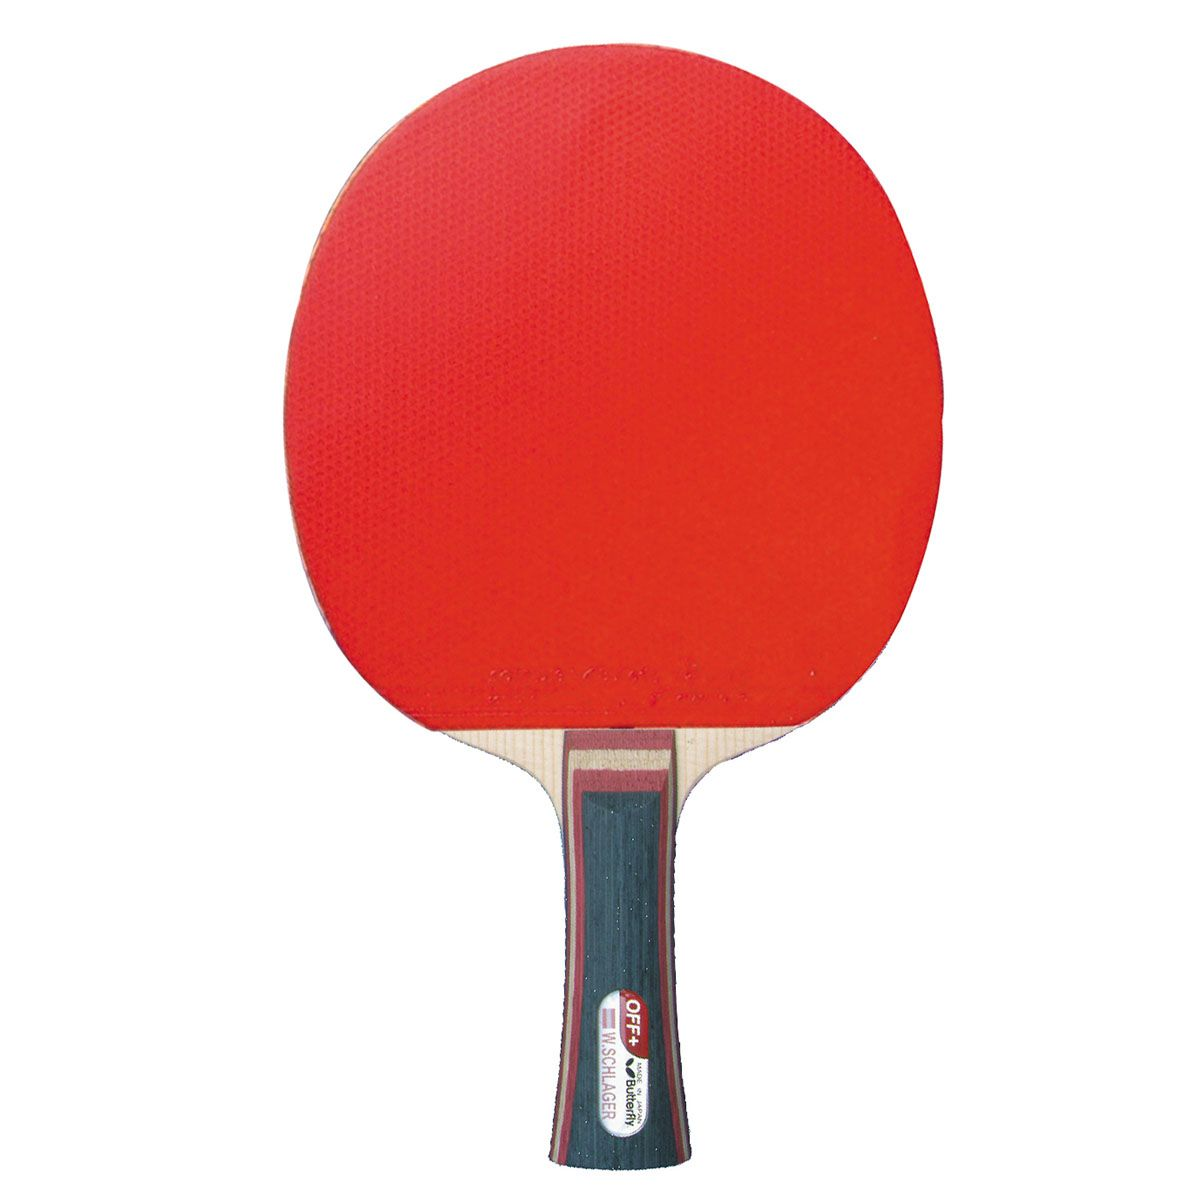 Butterfly Primorac Off Table Tennis Bat With Bryce Speed